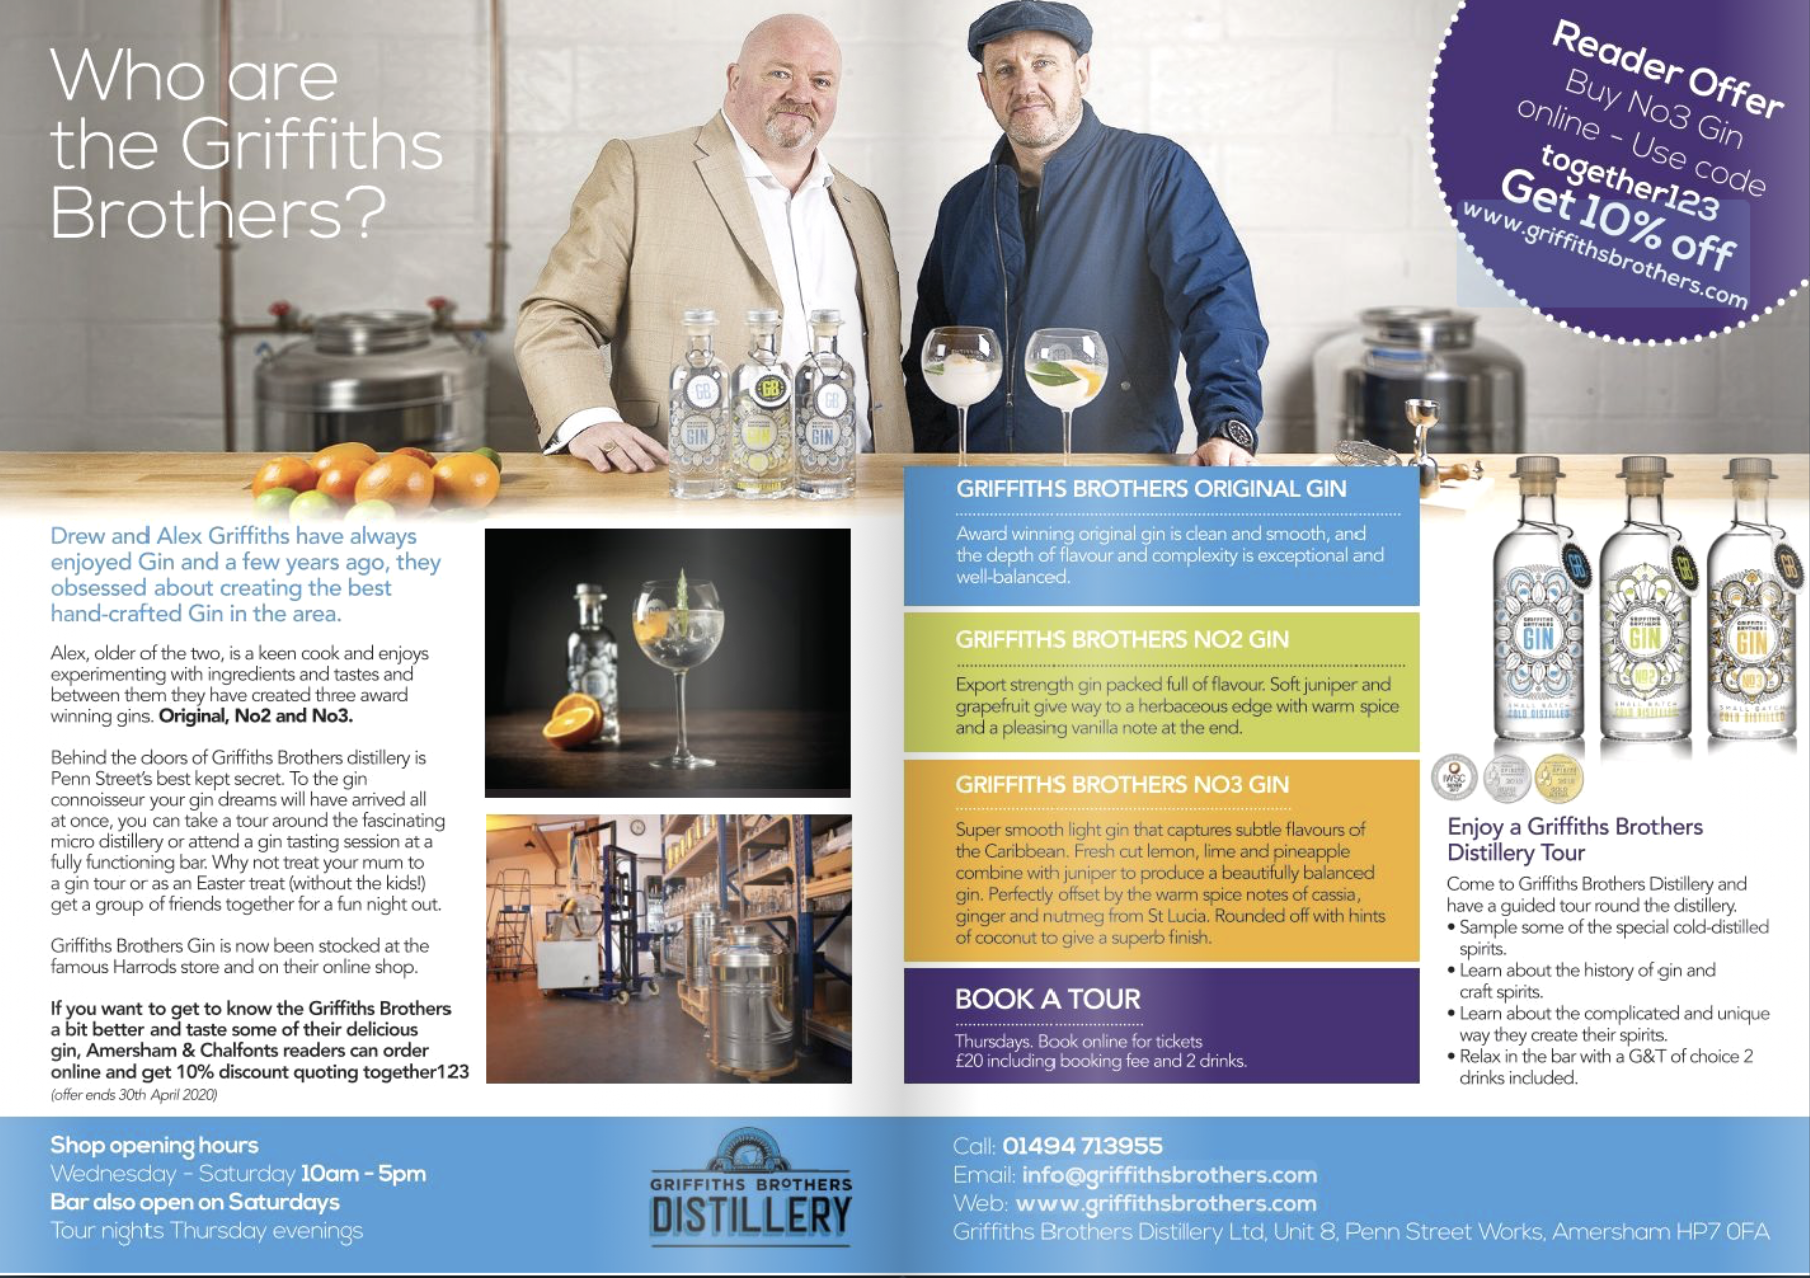 griffiths-brothers-gin-amershamandchalfontstogether-march2020-offer